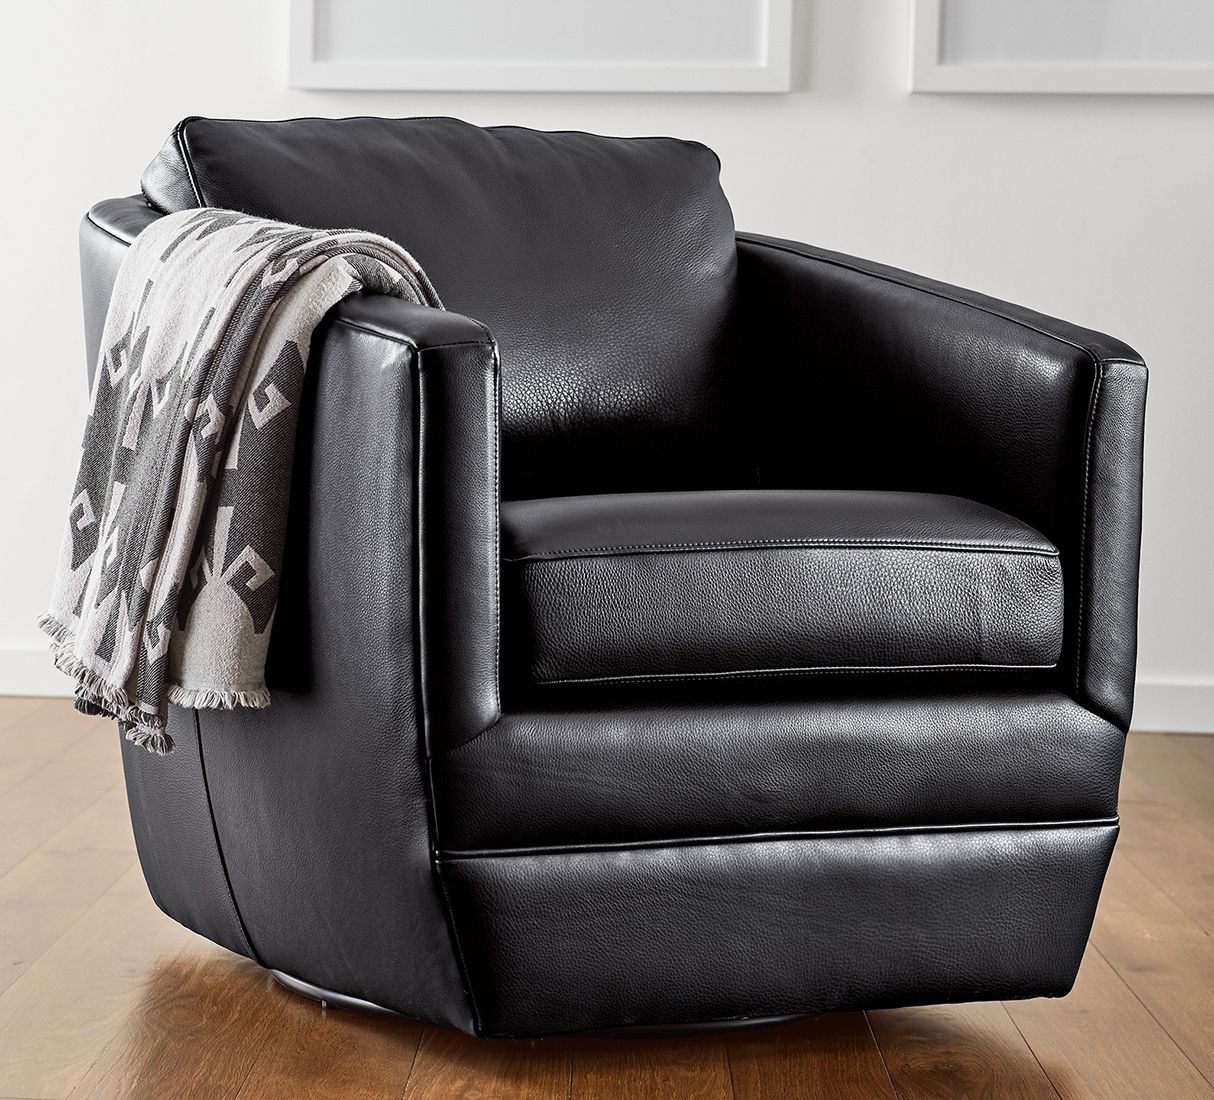 A modern leather swivel chair that looks right at home in